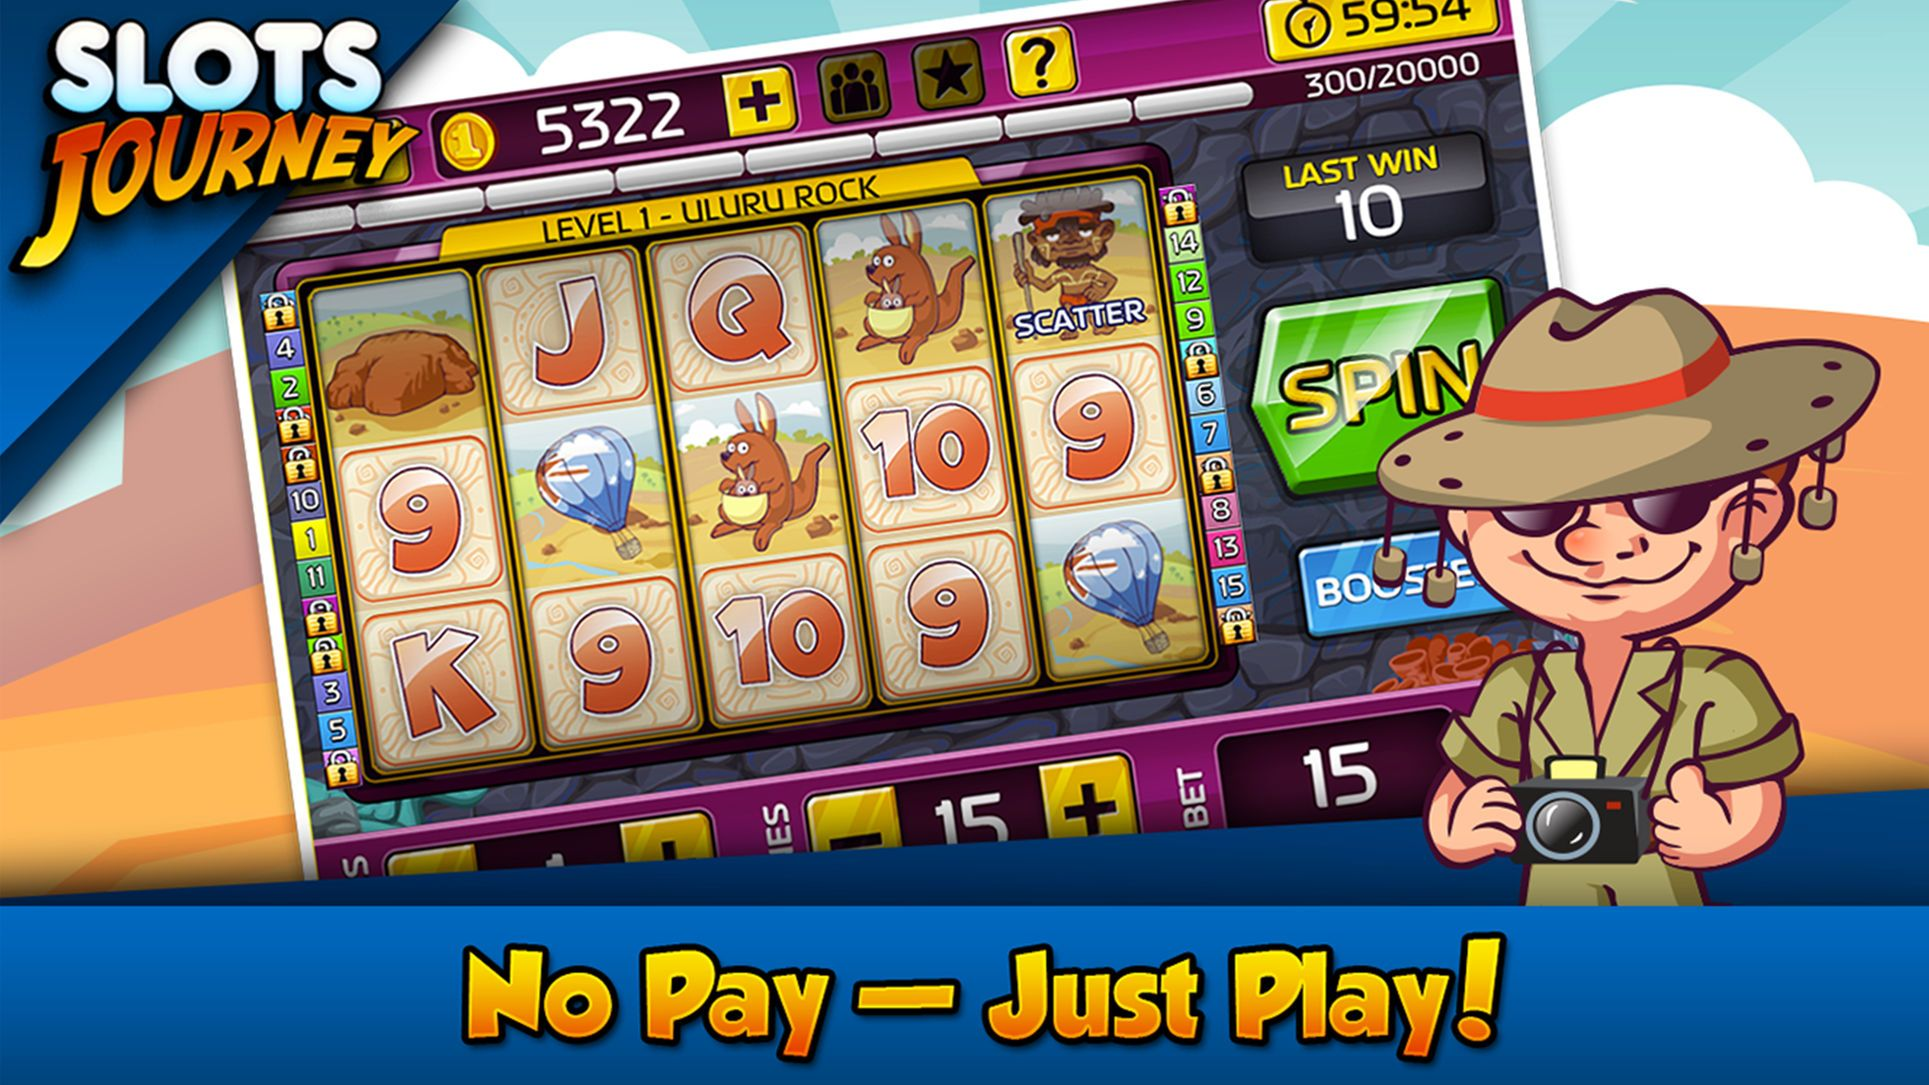 Slots Journey Casino Games Ios Card Games Slot Game App